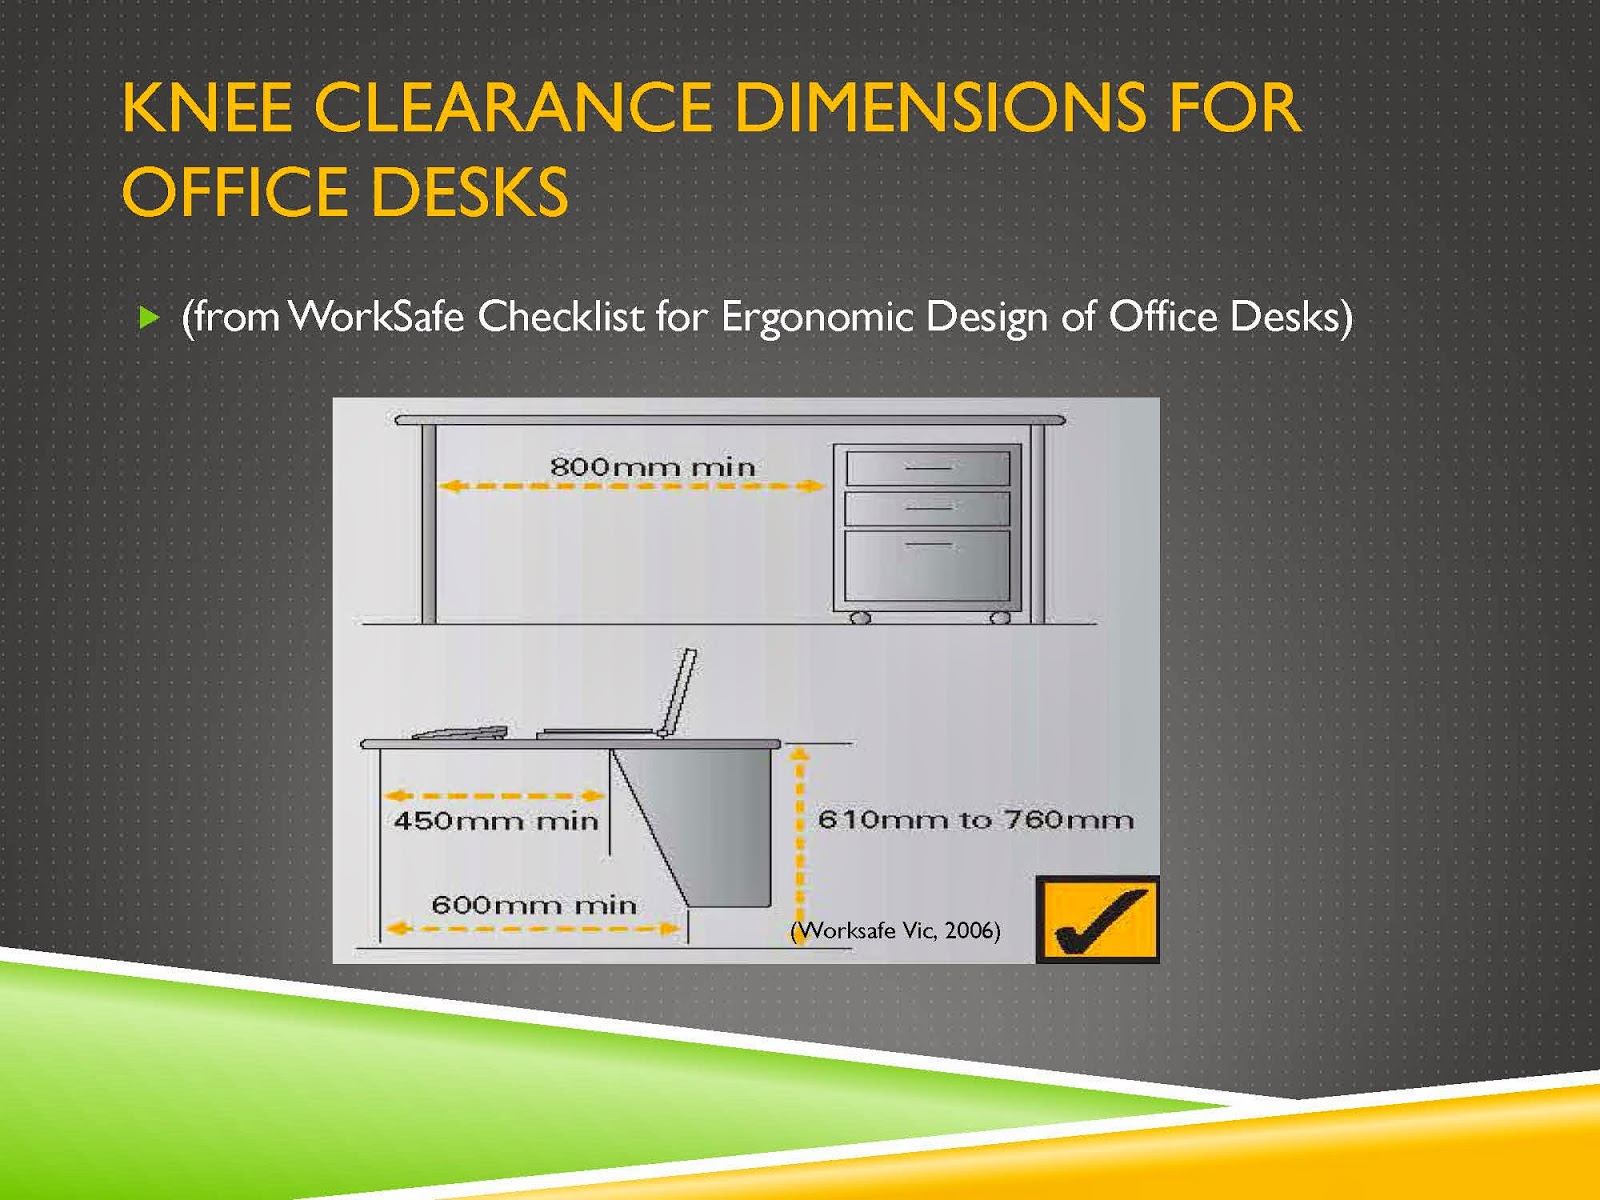 KNEE CLEARANCE DIMENSIONS FOR OFFICE DESKS